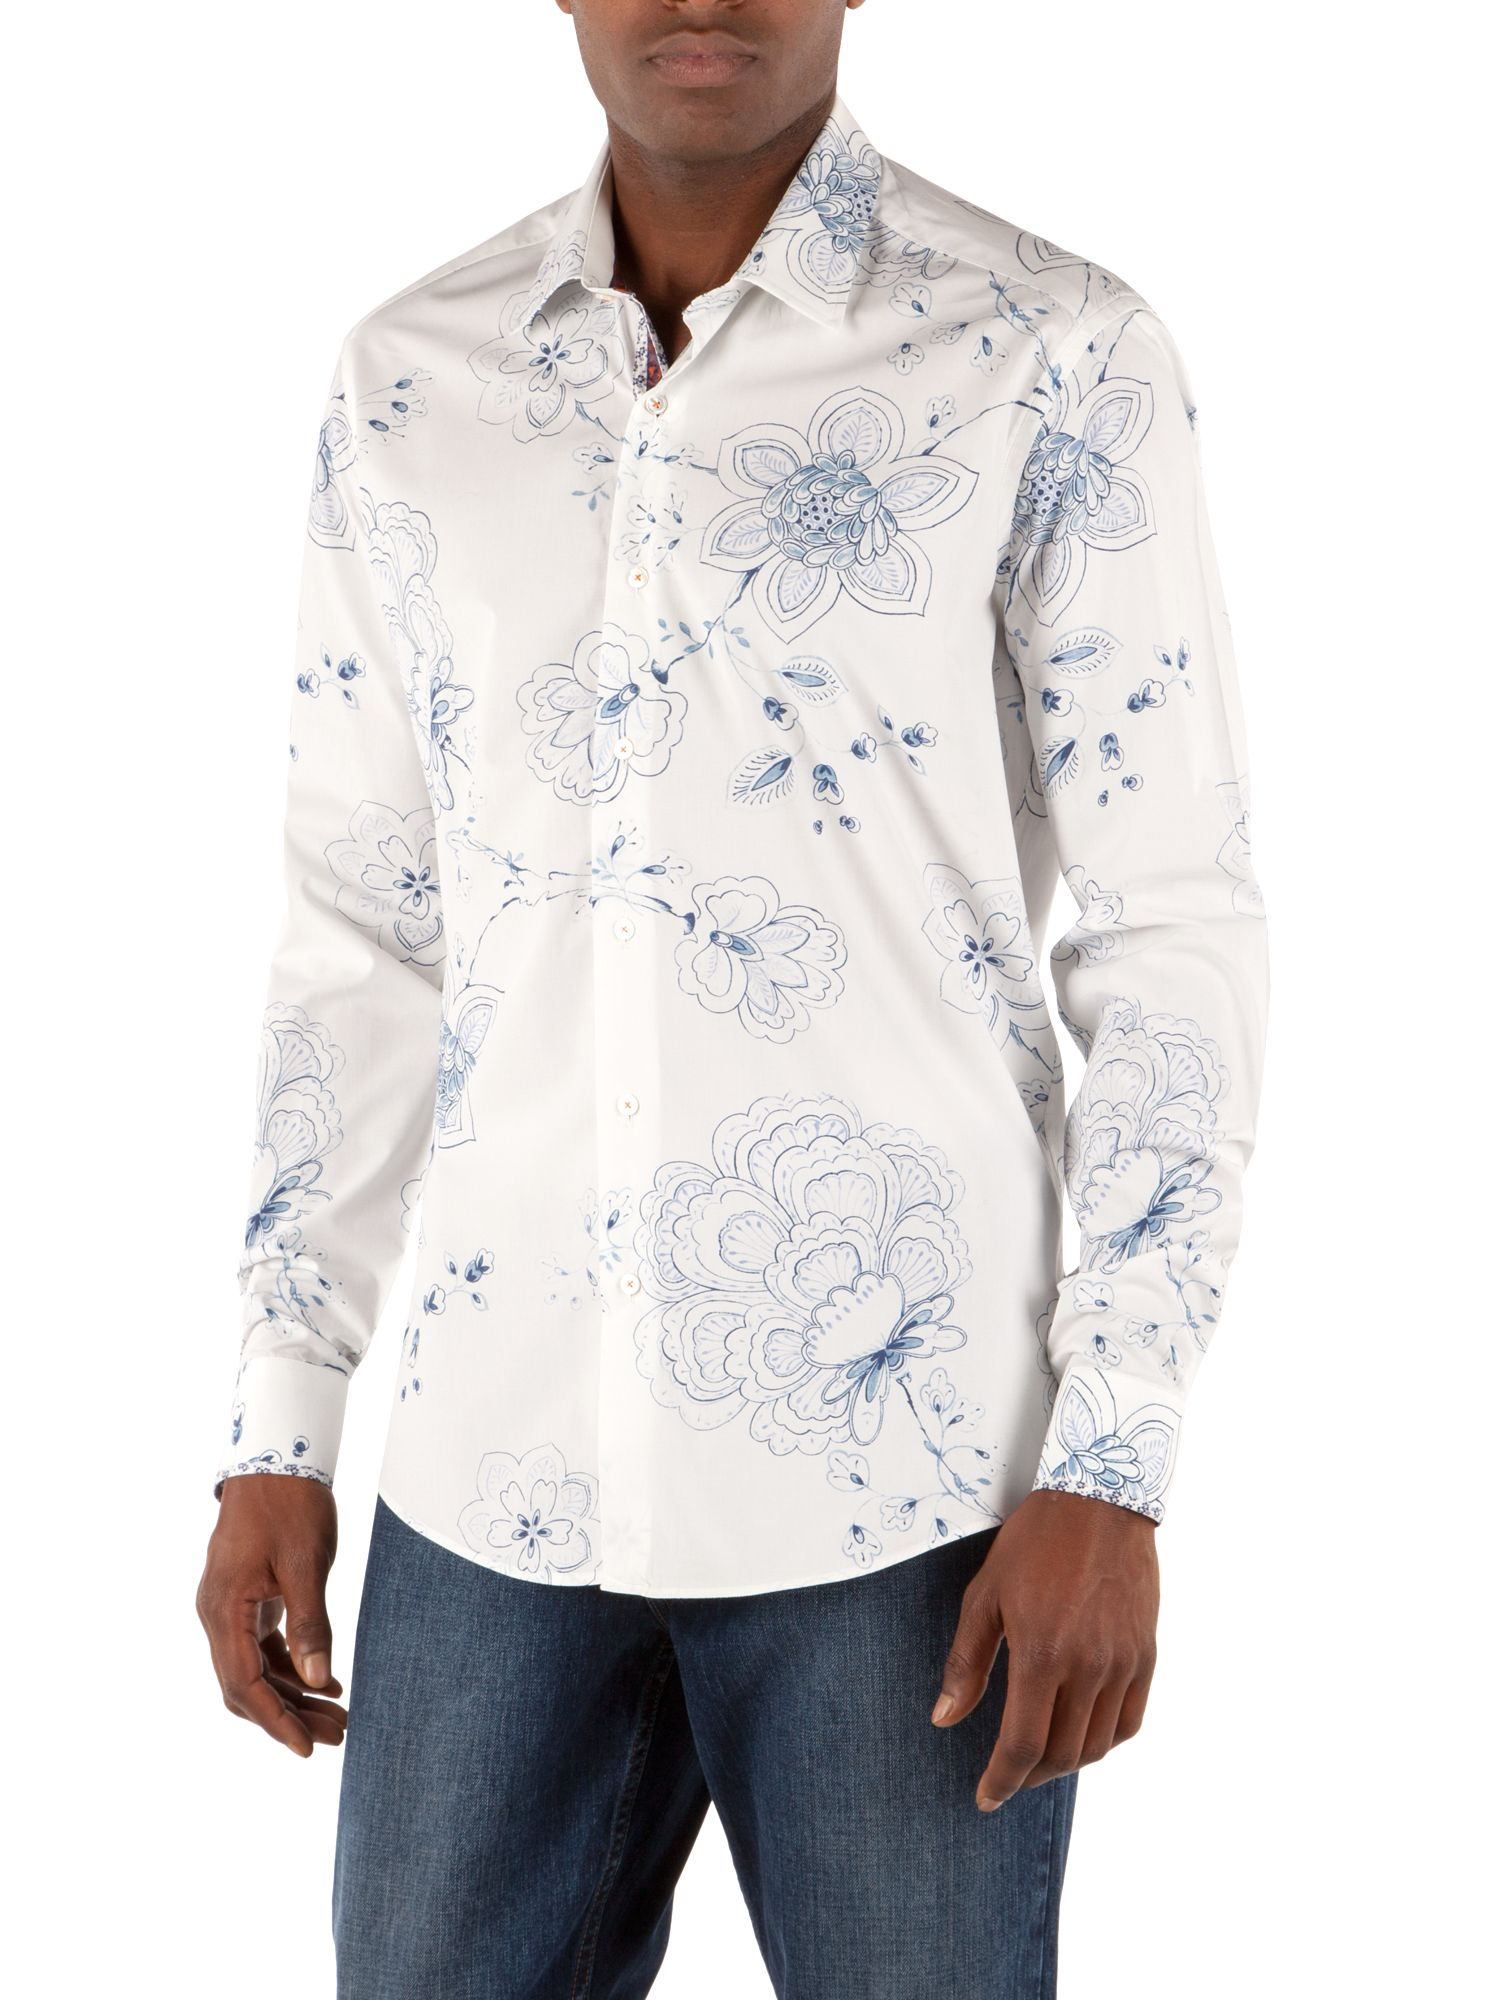 Pedicels smudgy flower shirt